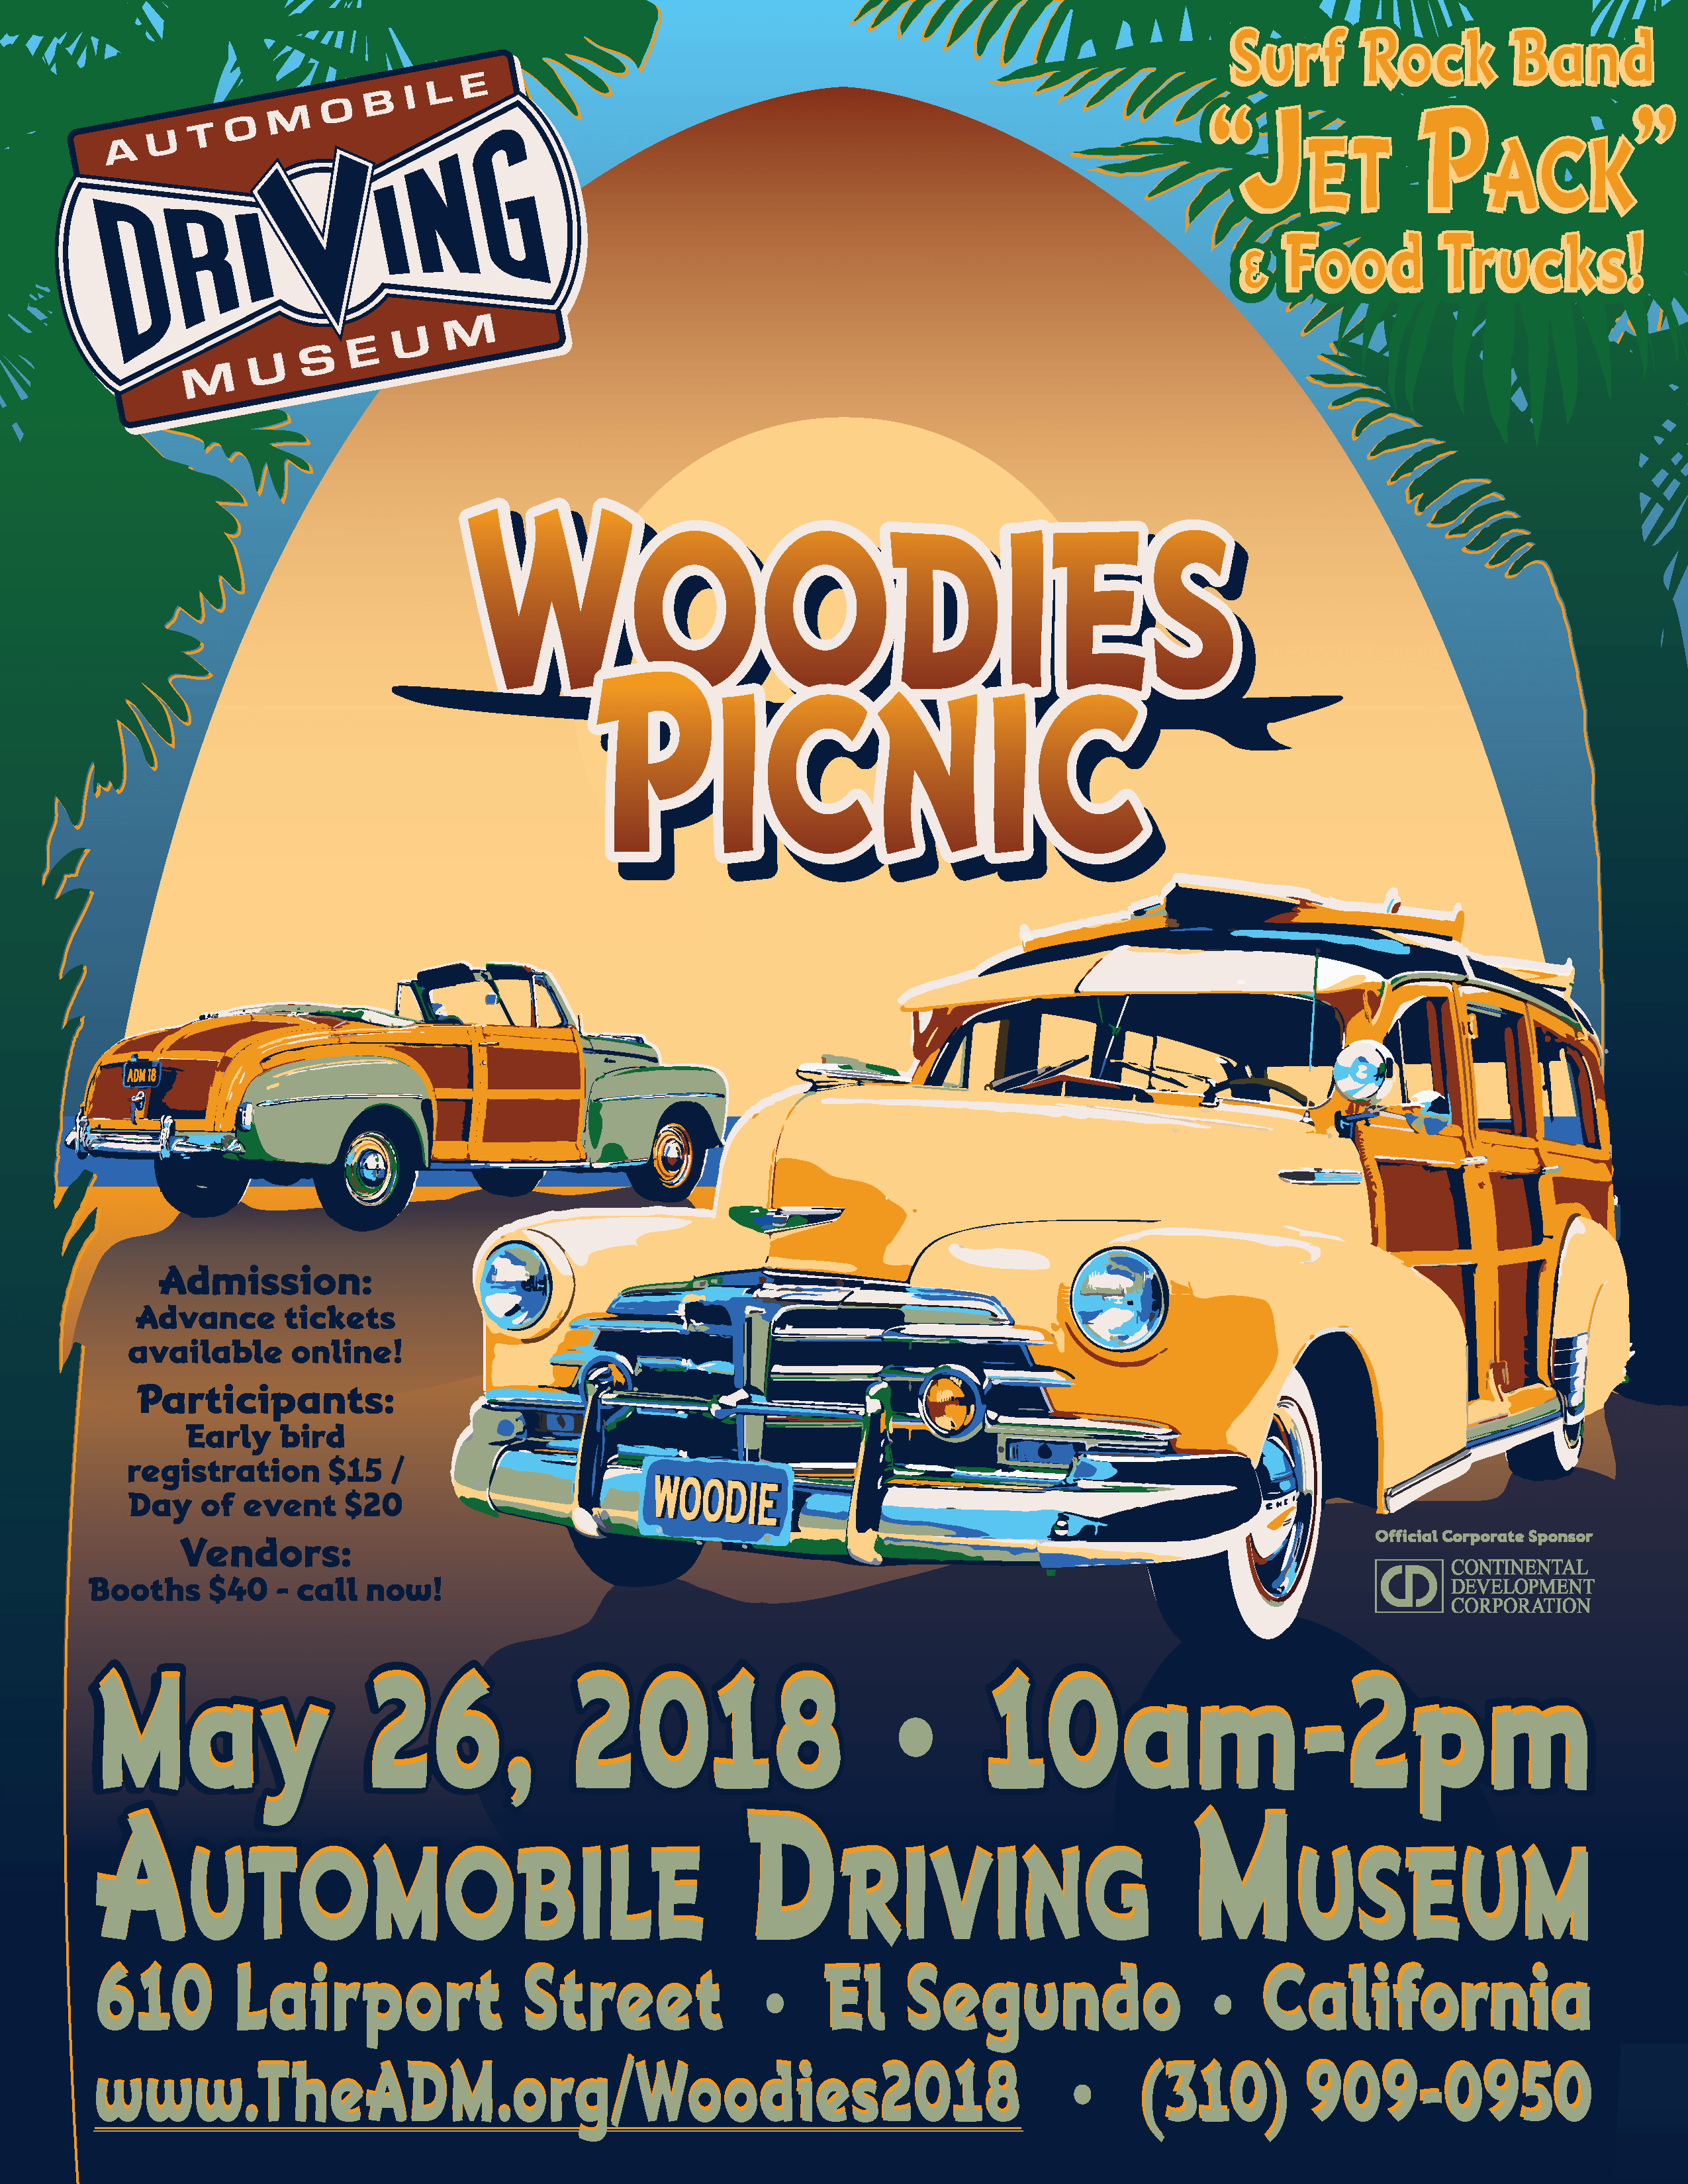 Woodies Picnic And Car Show Automobile Driving Museum - Car shows near me now